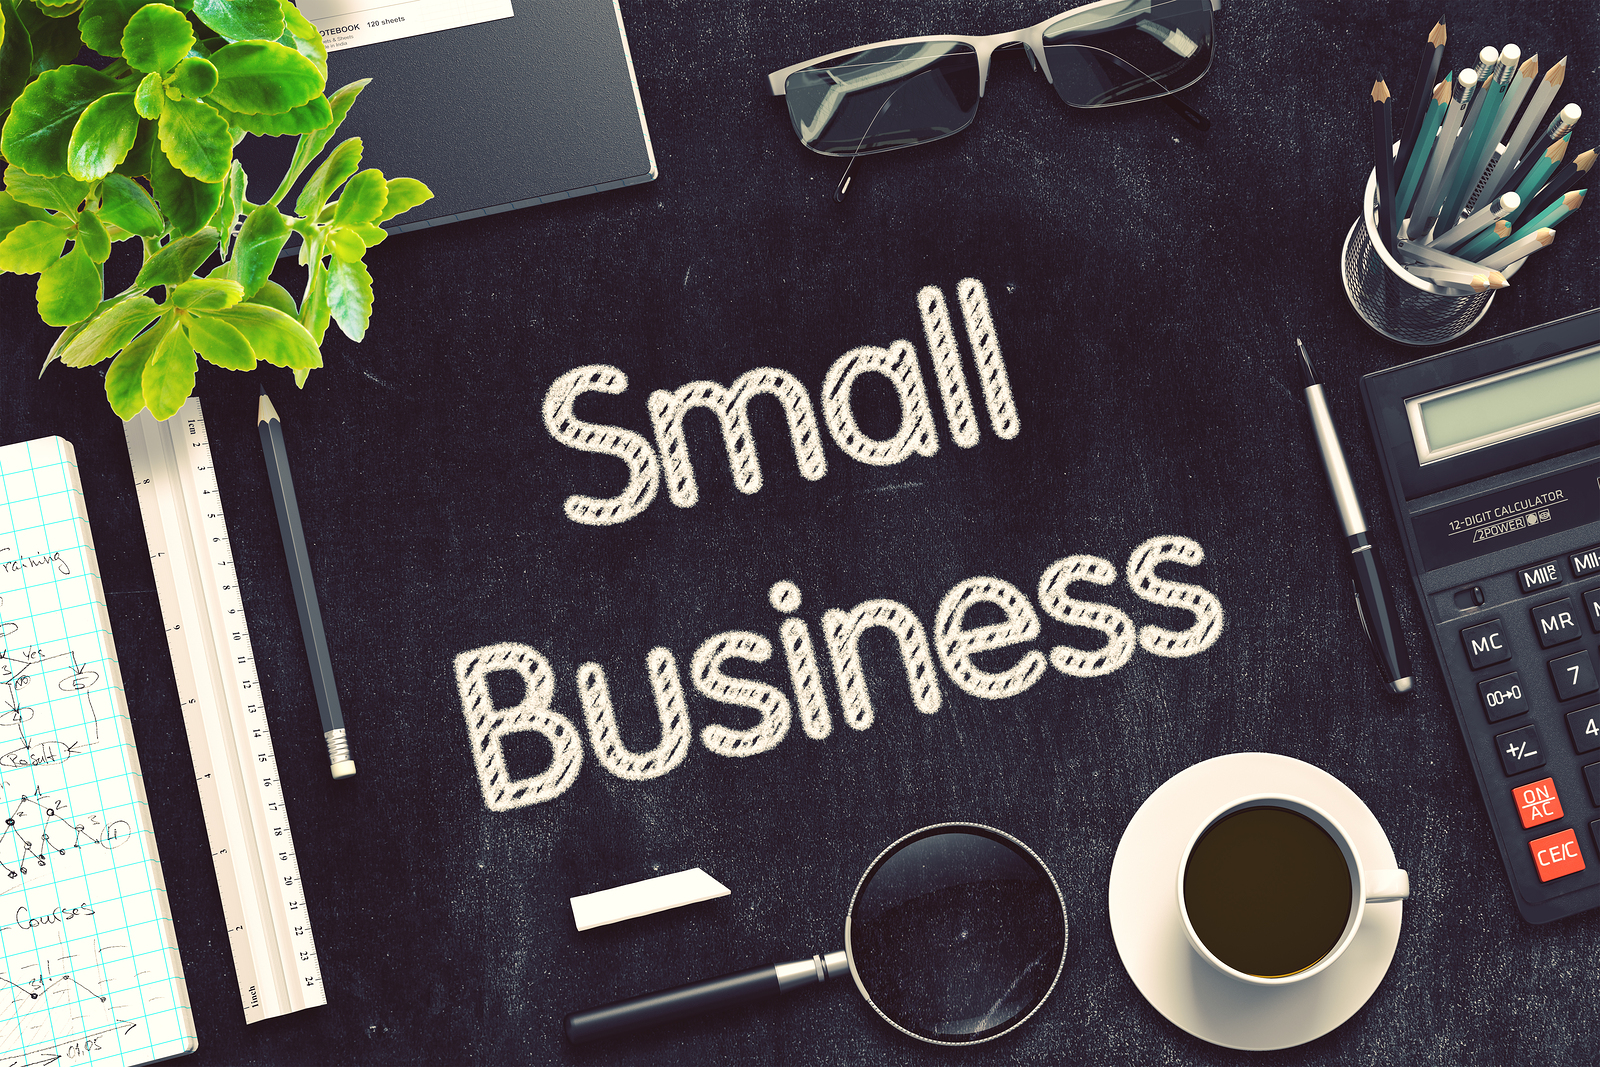 A Simple yet Comprehensive Emergency Plan for Small Business Owners